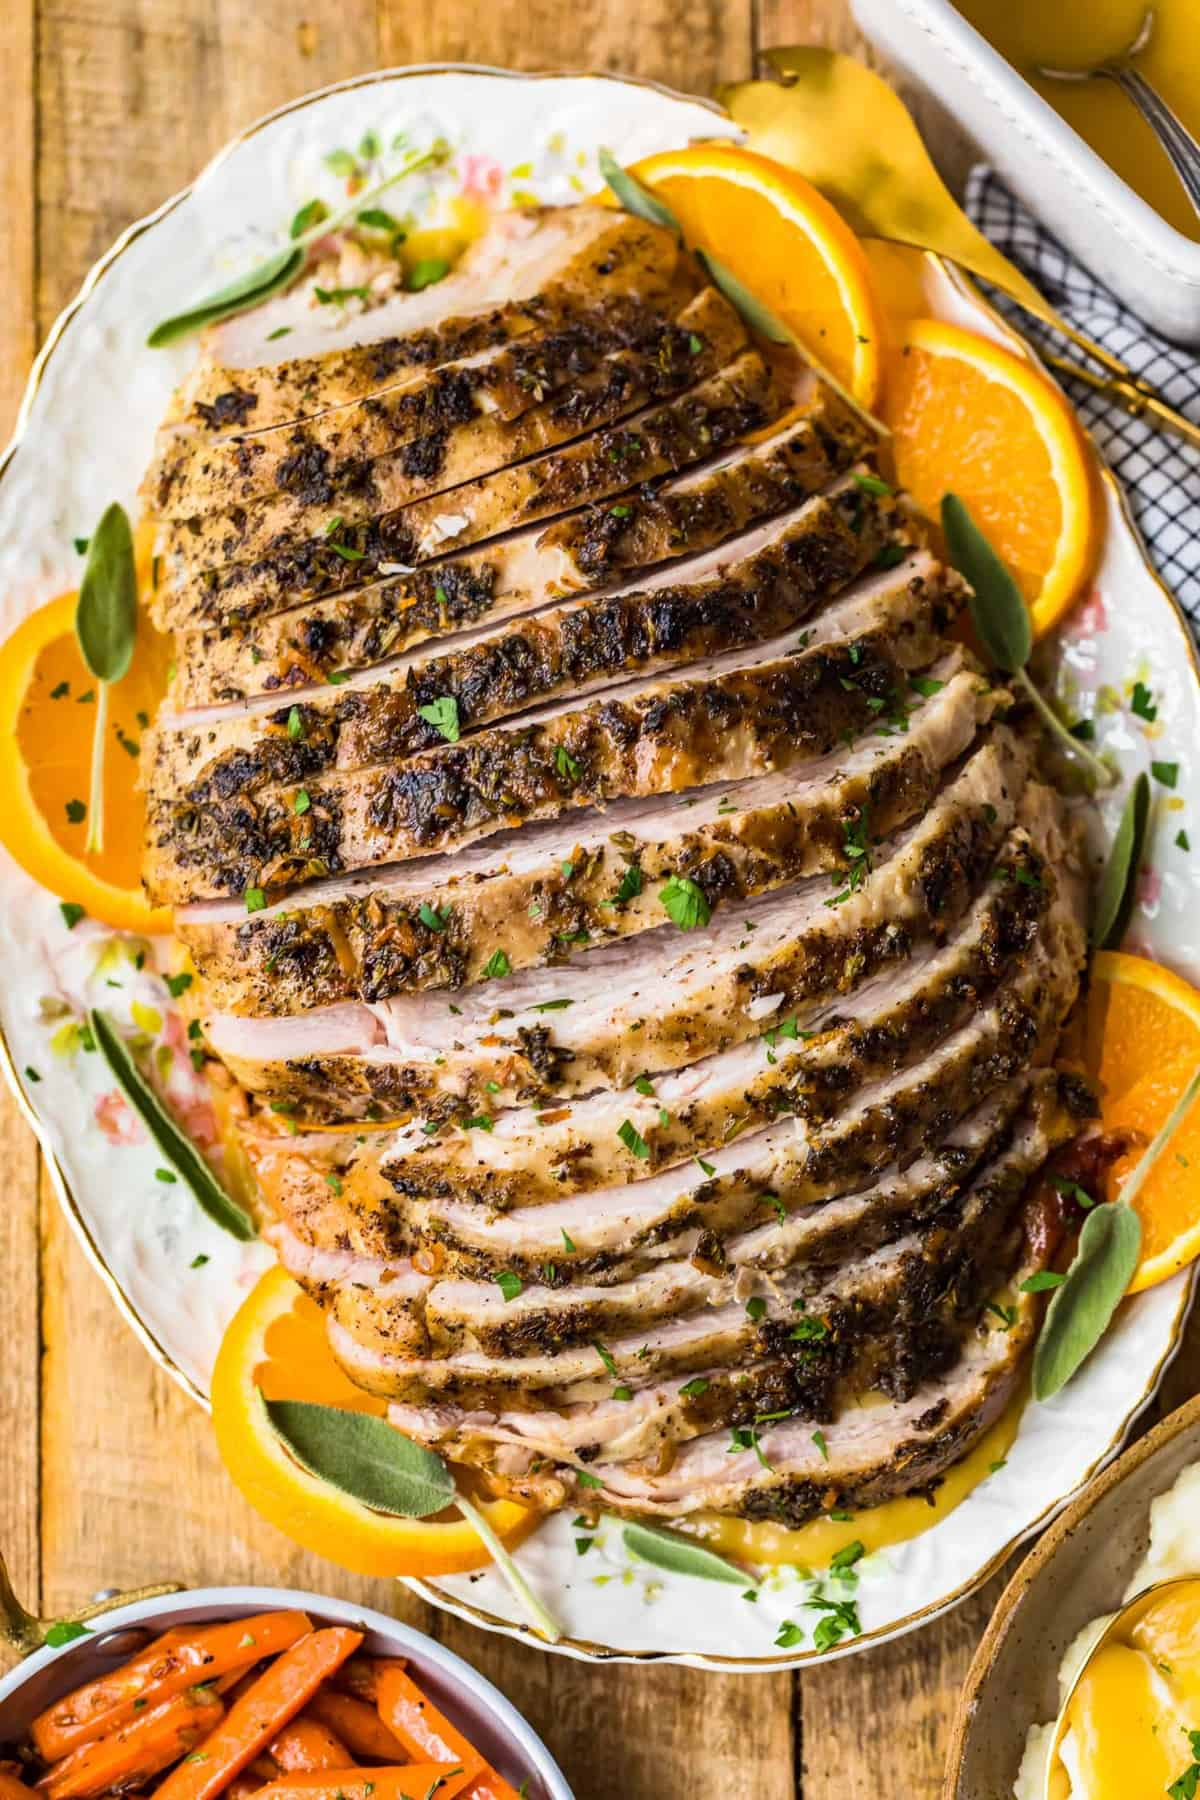 Top shot of sliced turkey breast on a serving plate